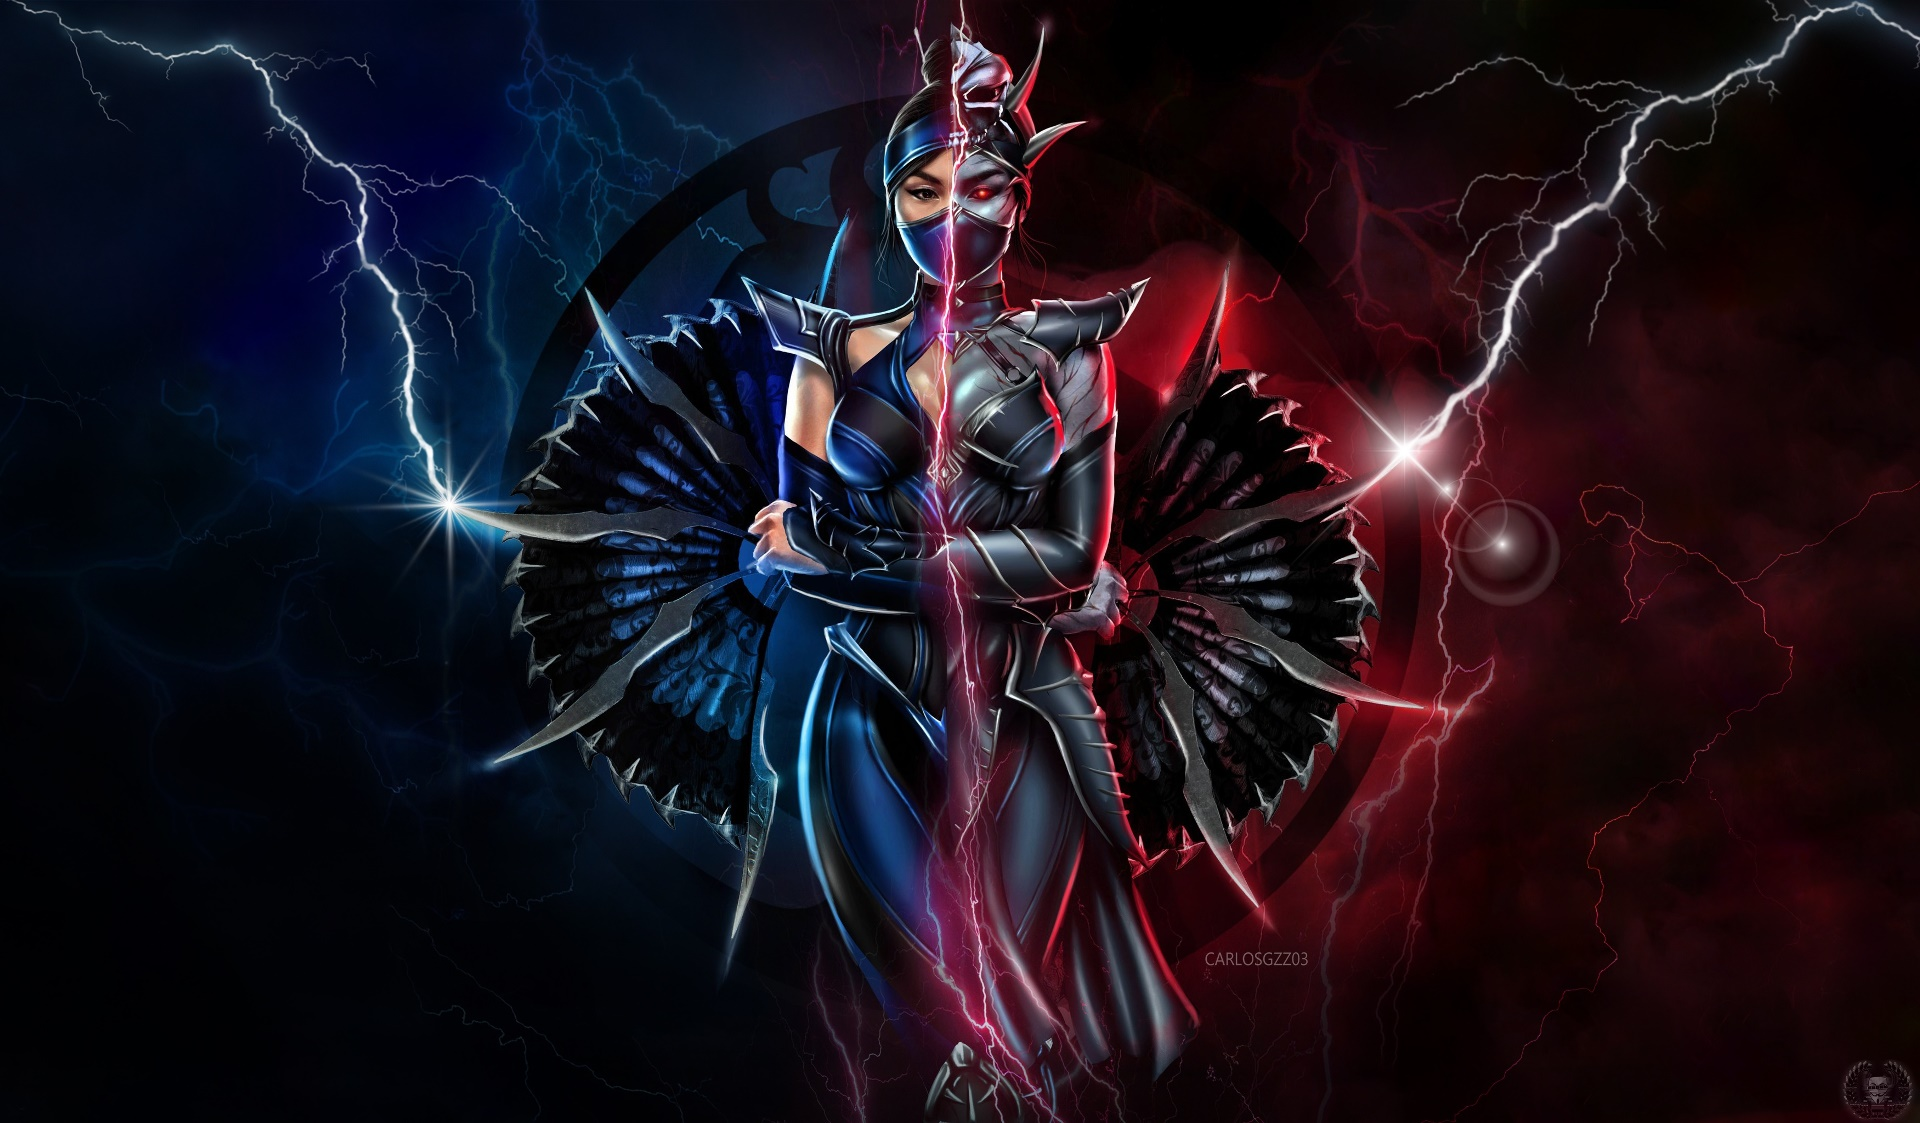 General 1920x1123 Mortal Kombat video games Video Game Warriors video game art Mortal Kombat 11 Kitana